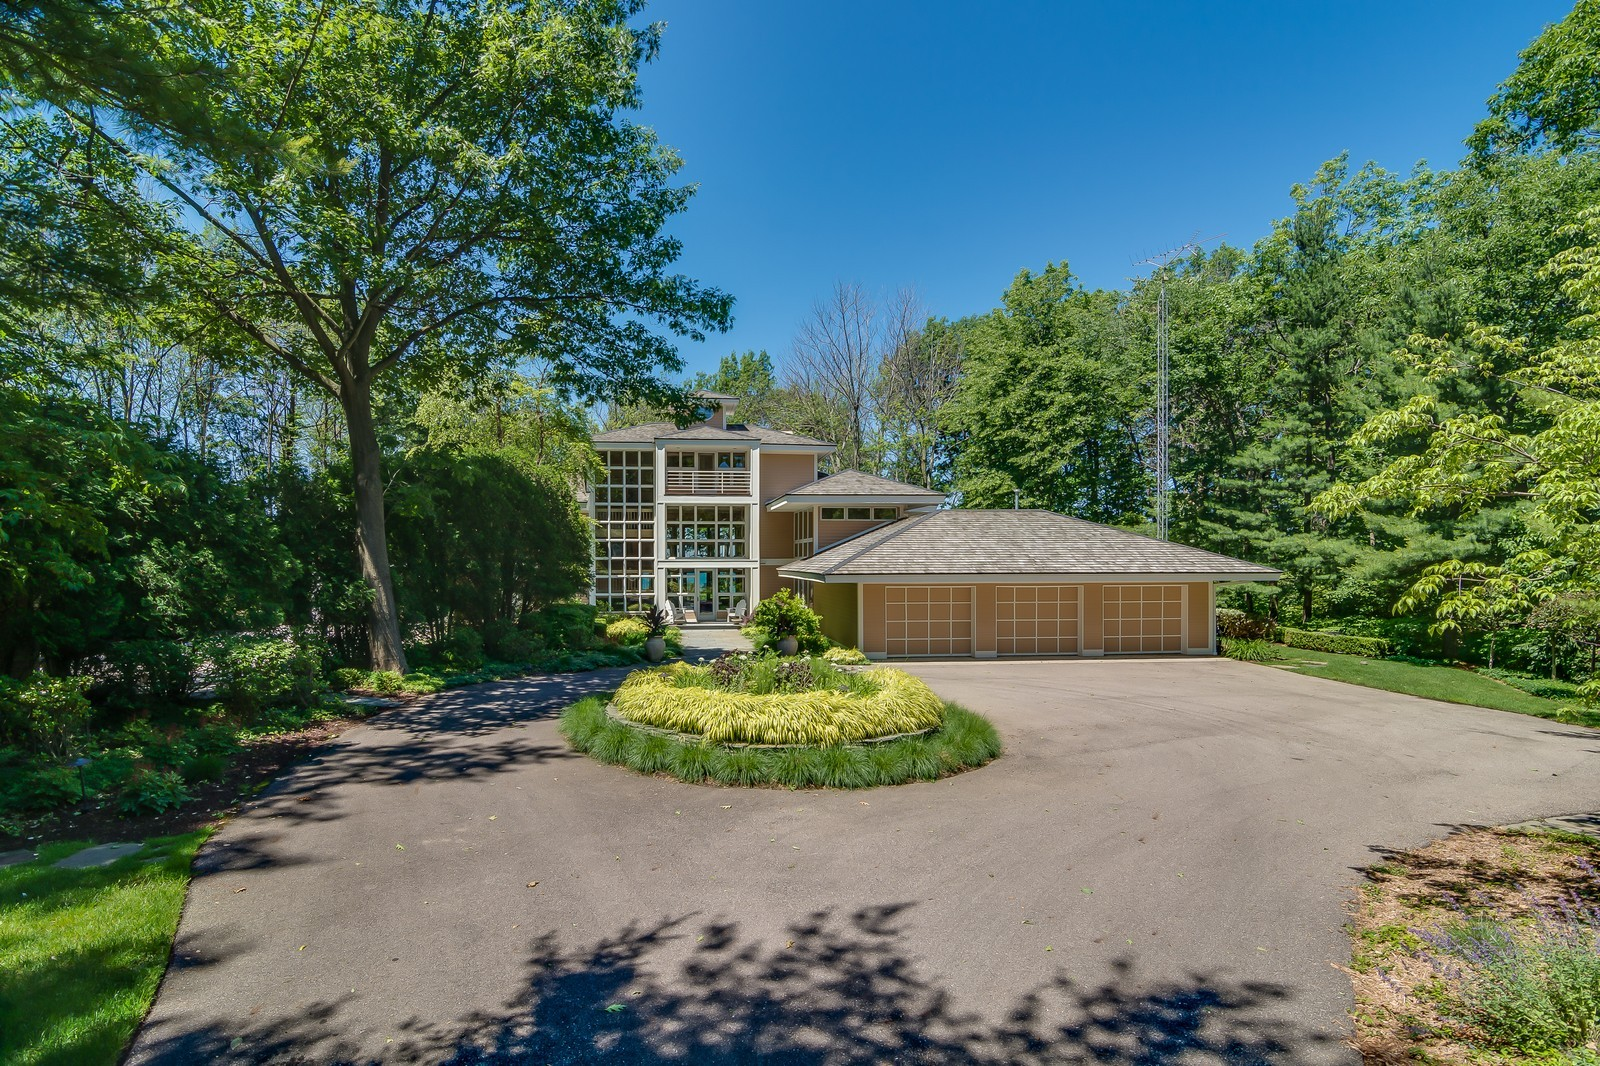 Real Estate Photography - 364 74th St, South Haven, MI, 49090 - Front View